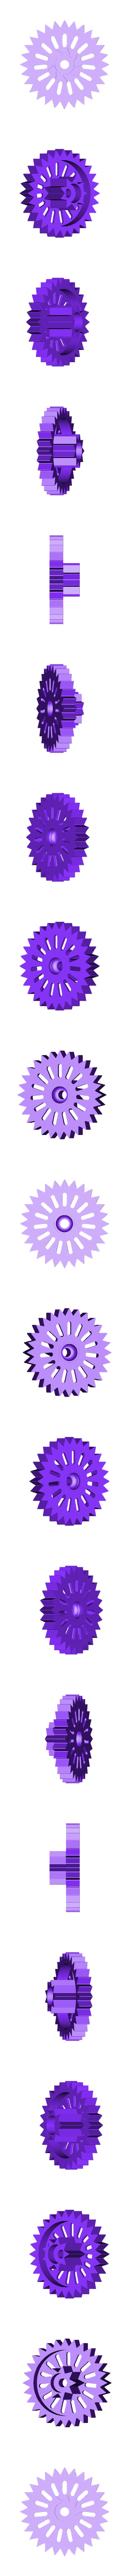 30mmGear.stl Download free STL file Crazy Cogs - Gear Play Set • 3D printer template, PapaBravo